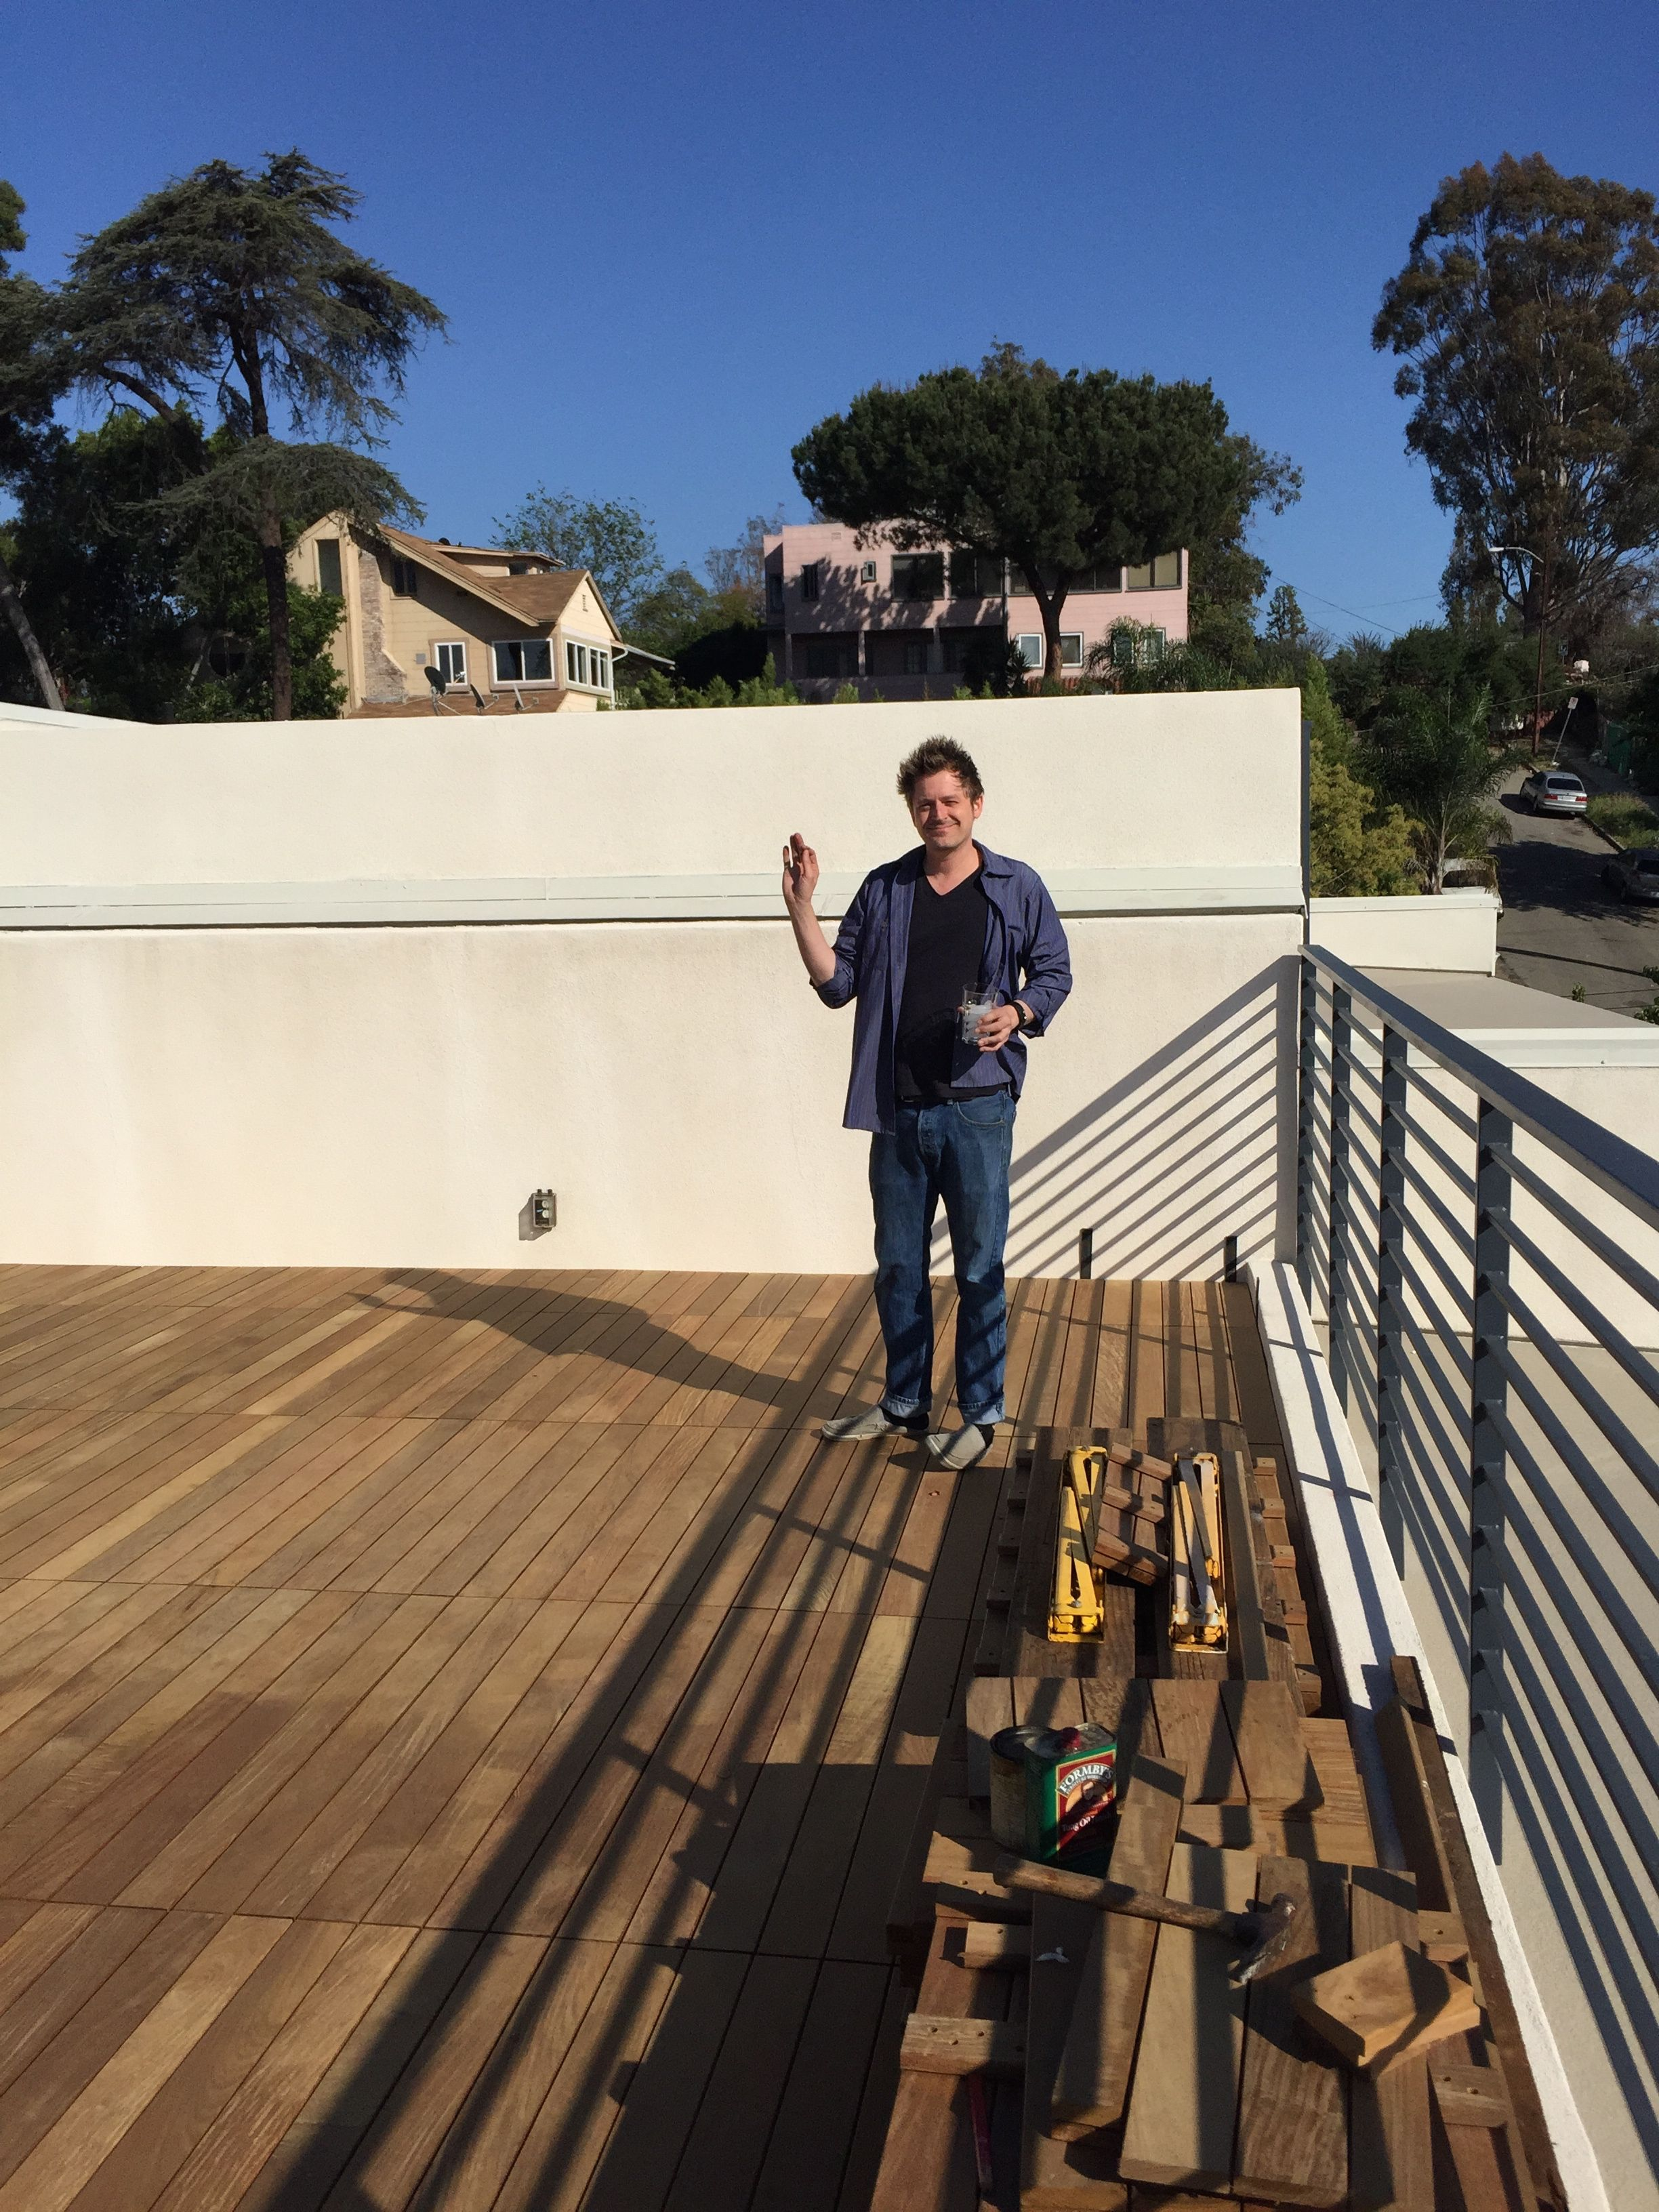 Customer Who Built His Deck With Bison Wood Tiles. What A Gorgeous Space! #